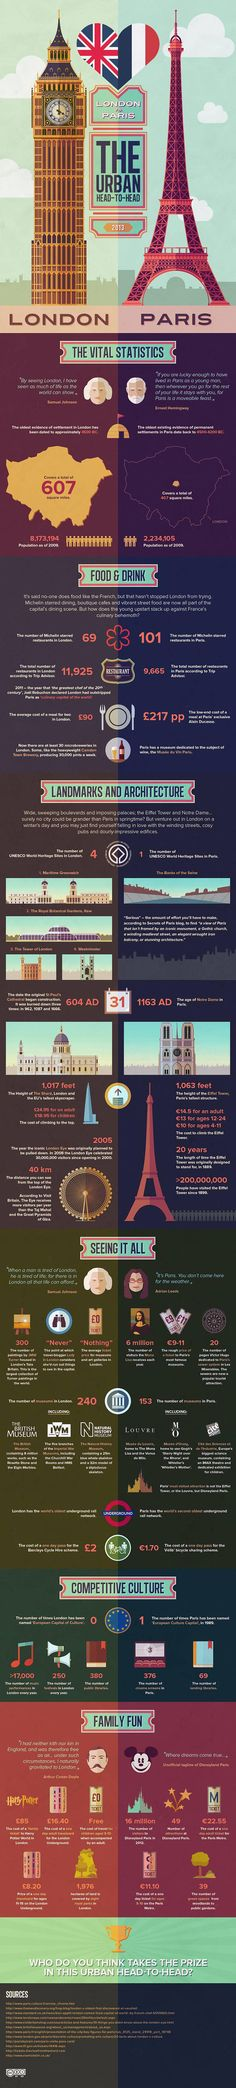 grafiker.de - INFOGRAFIK: London vs. Paris